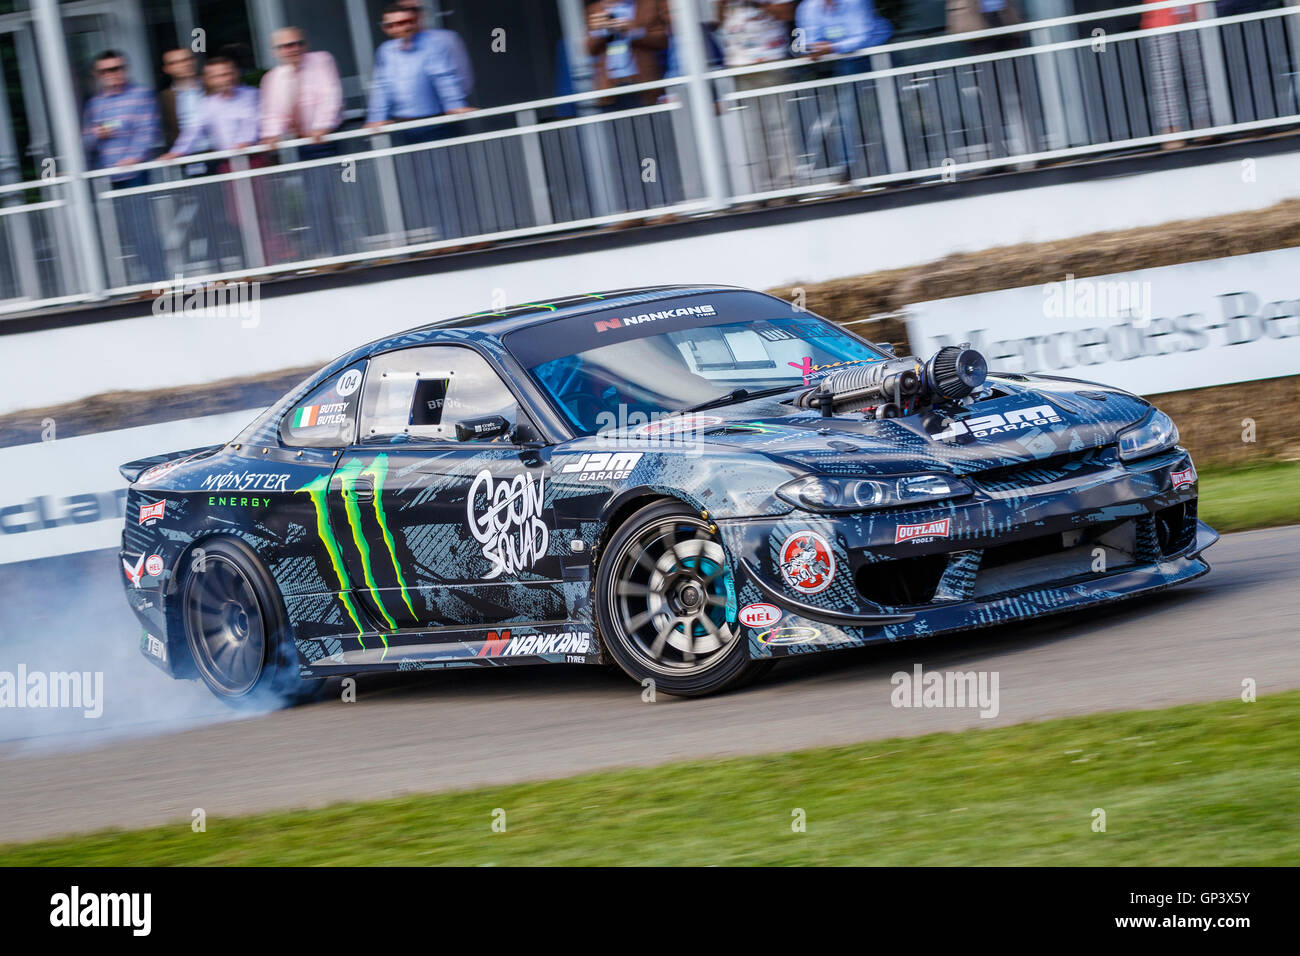 Butsy Butleru0027s Nissan 200ZX S15 Drift Car At The 2016 Goodwood Festival Of  Speed, Sussex